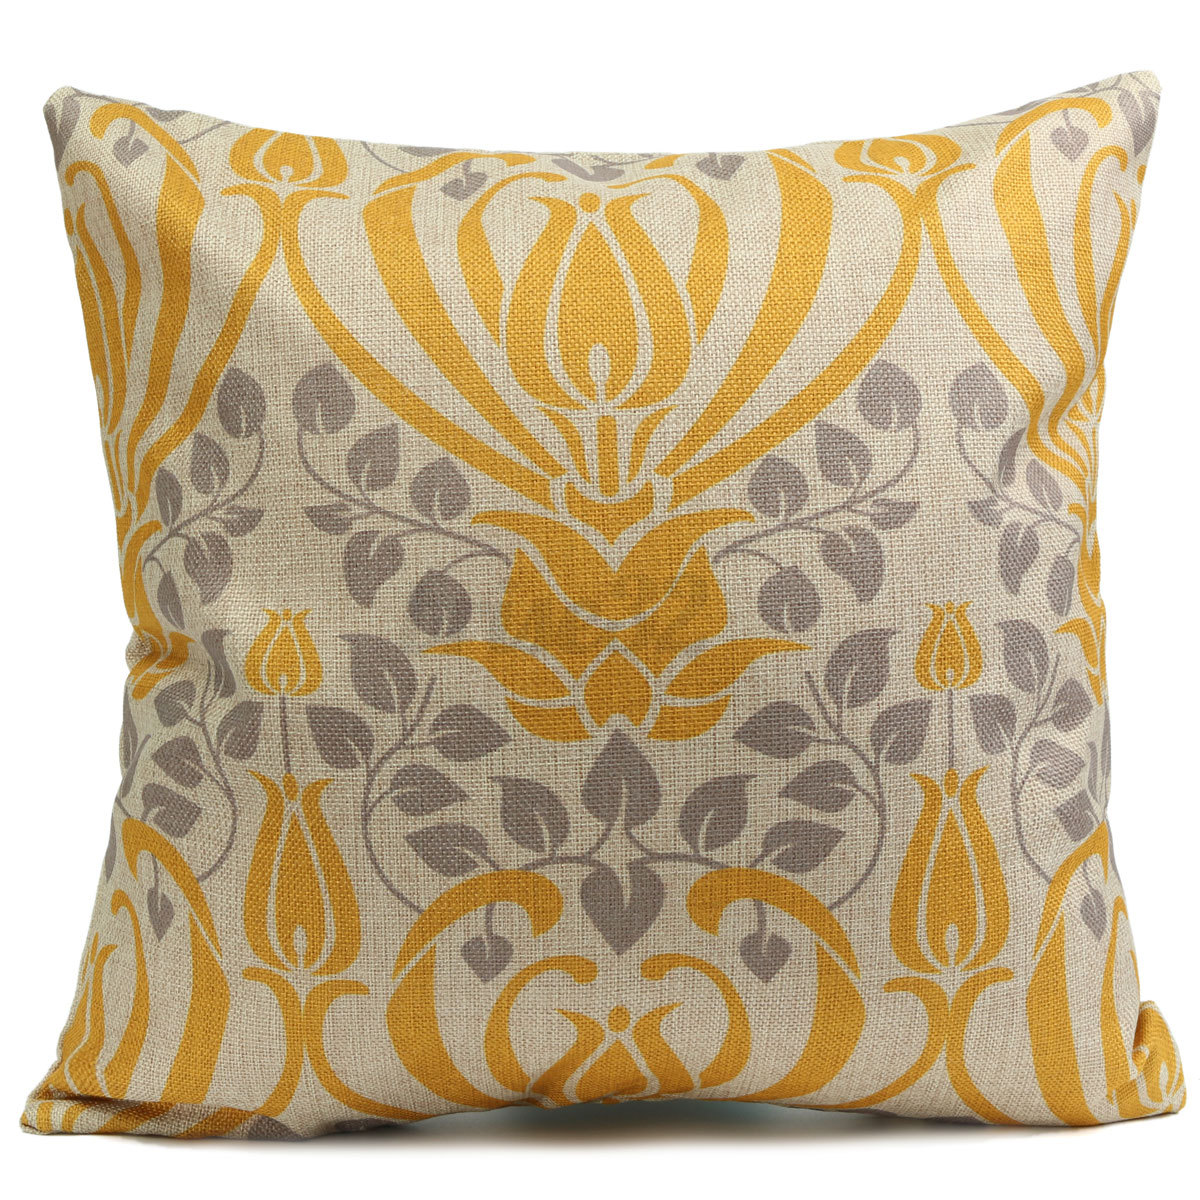 Yellow Linen Throw Pillow : Retro Yellow Flower Cotton Linen Pillow Case Cushion Cover Home Sofa Back Throw eBay